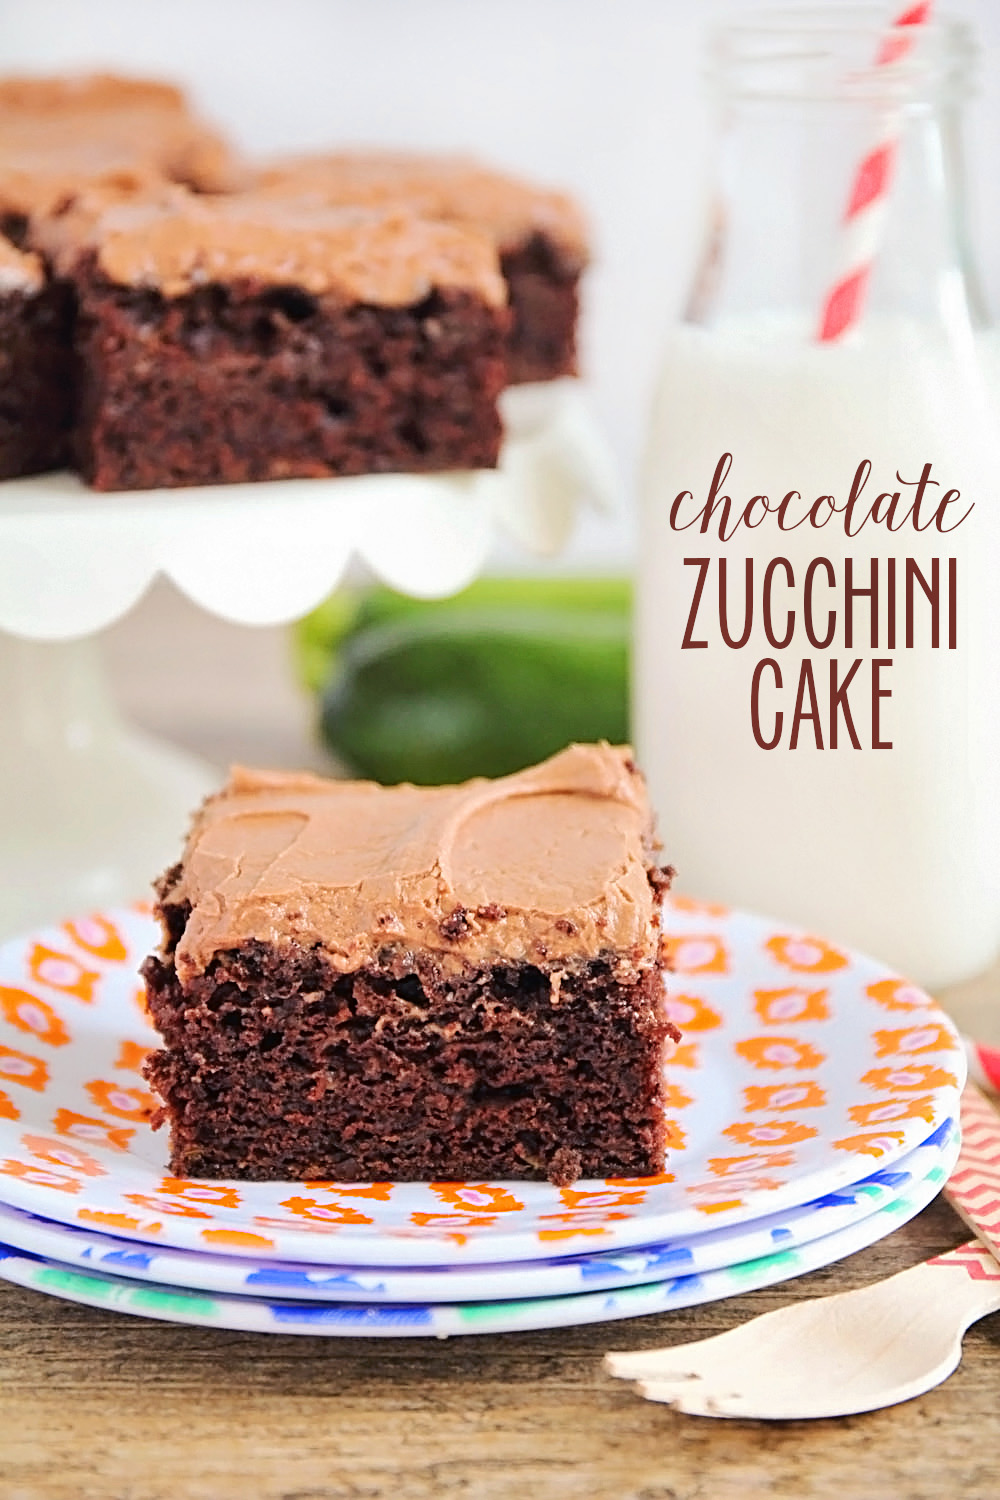 This chocolate zucchini cake is so rich and delicious, you would never ...